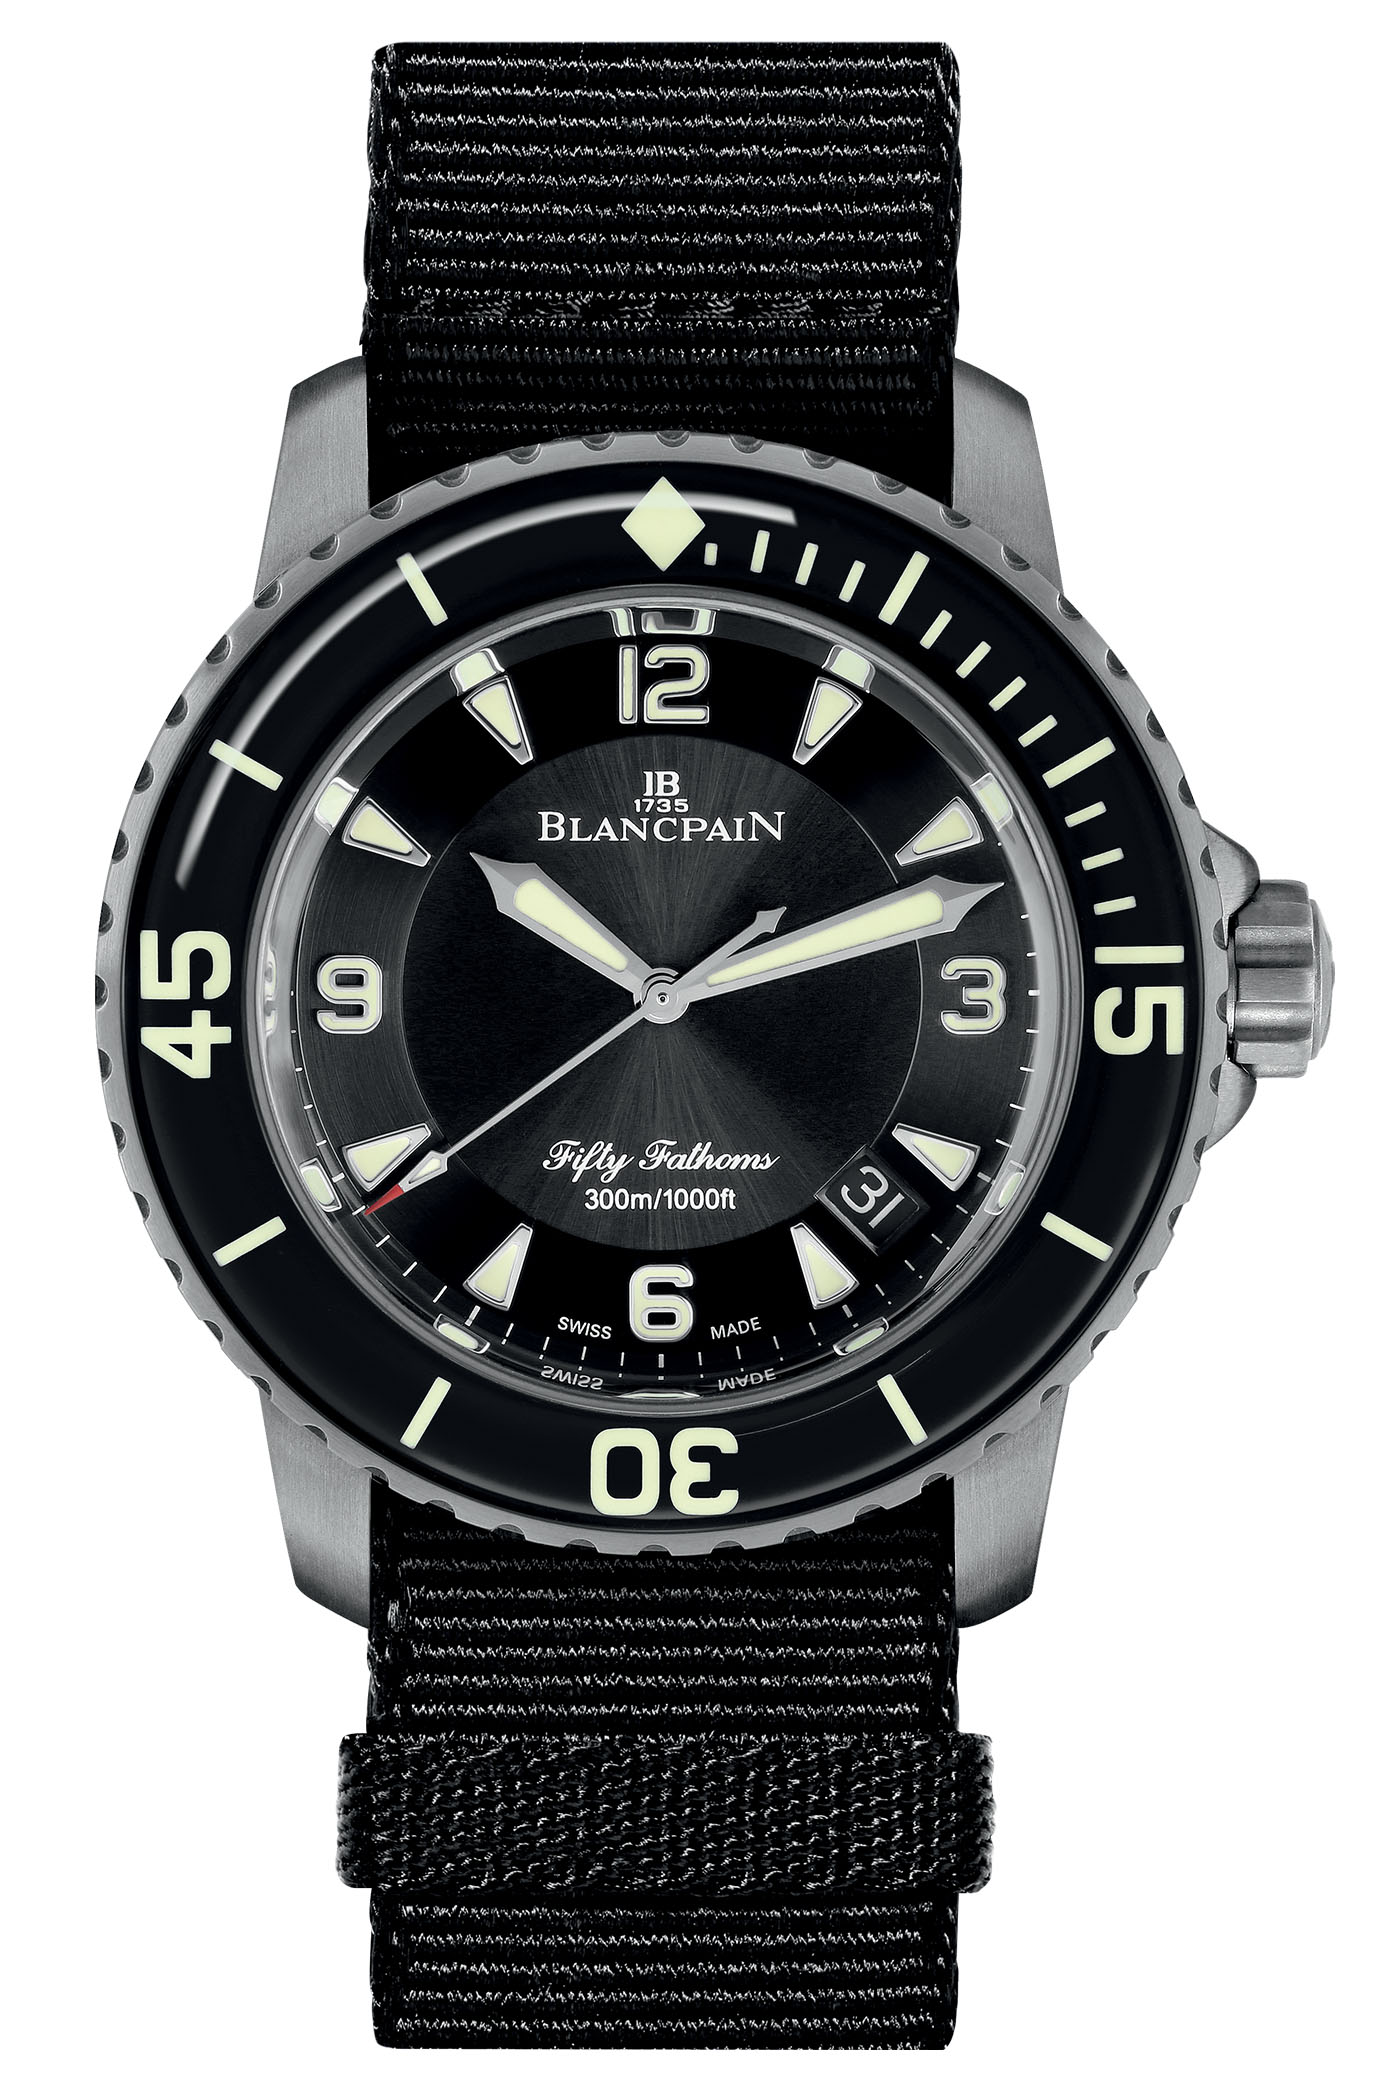 Blancpain Fifty Fathoms Automatique 5015 Titanium - 1